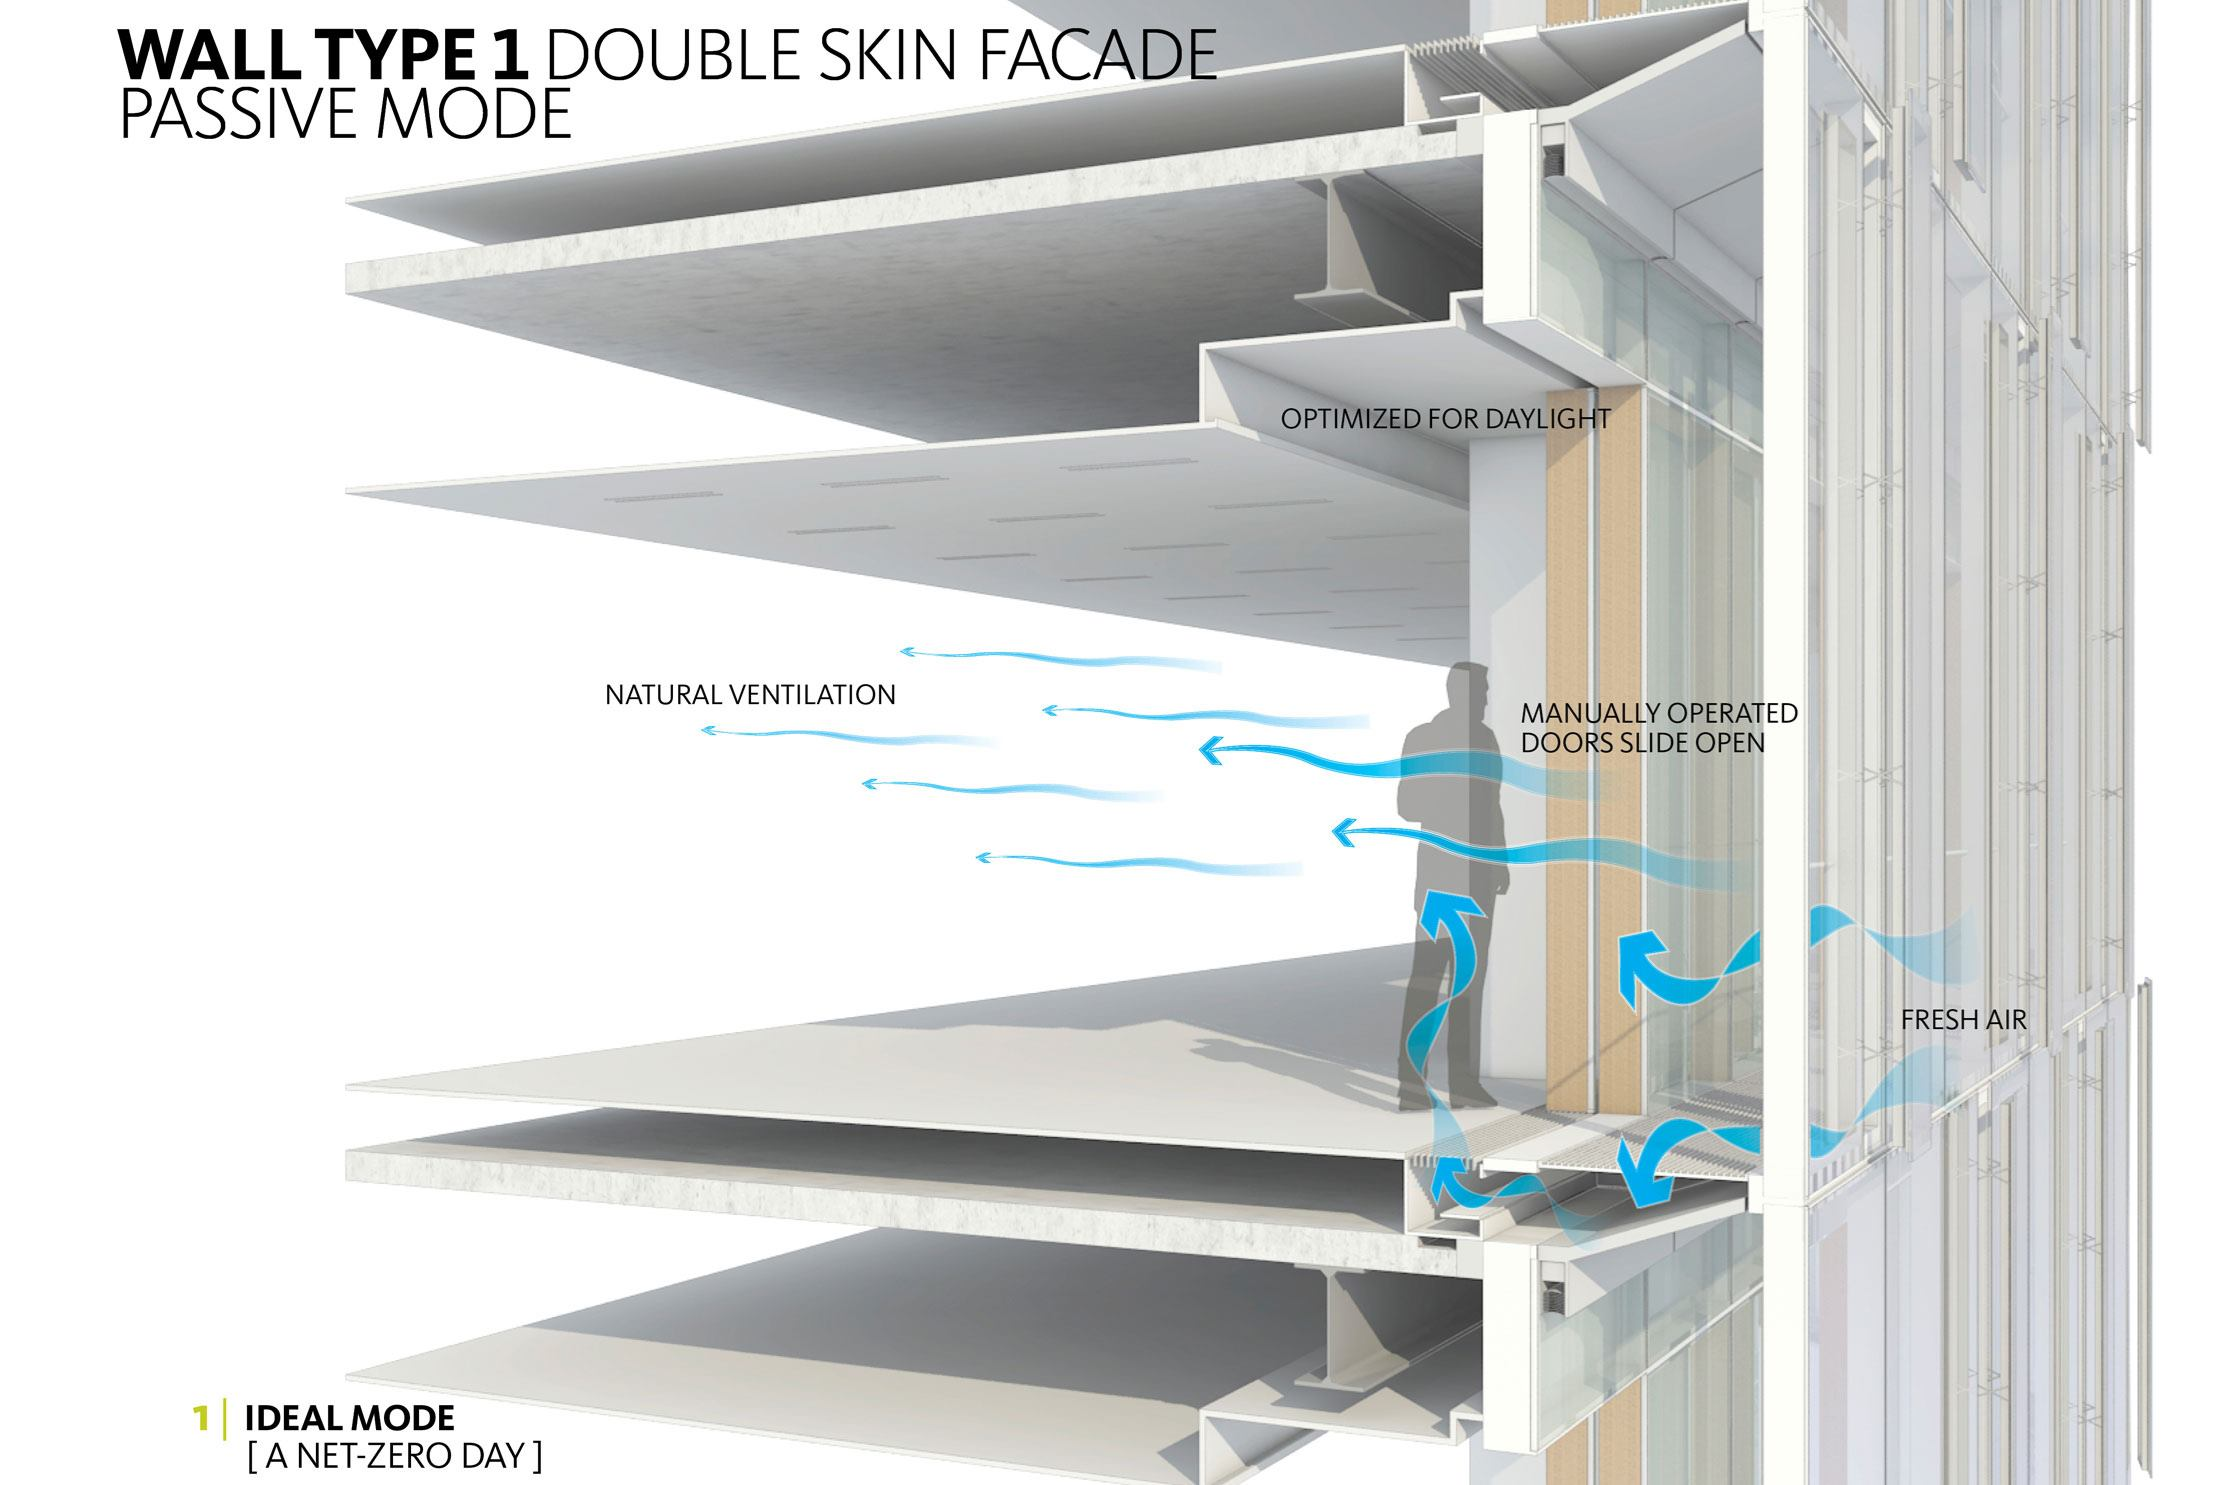 double skin fa ade case study Operation and control strategies for multi-story double skin facade s  integrated with multi-story double skin fa  case study was conducted.